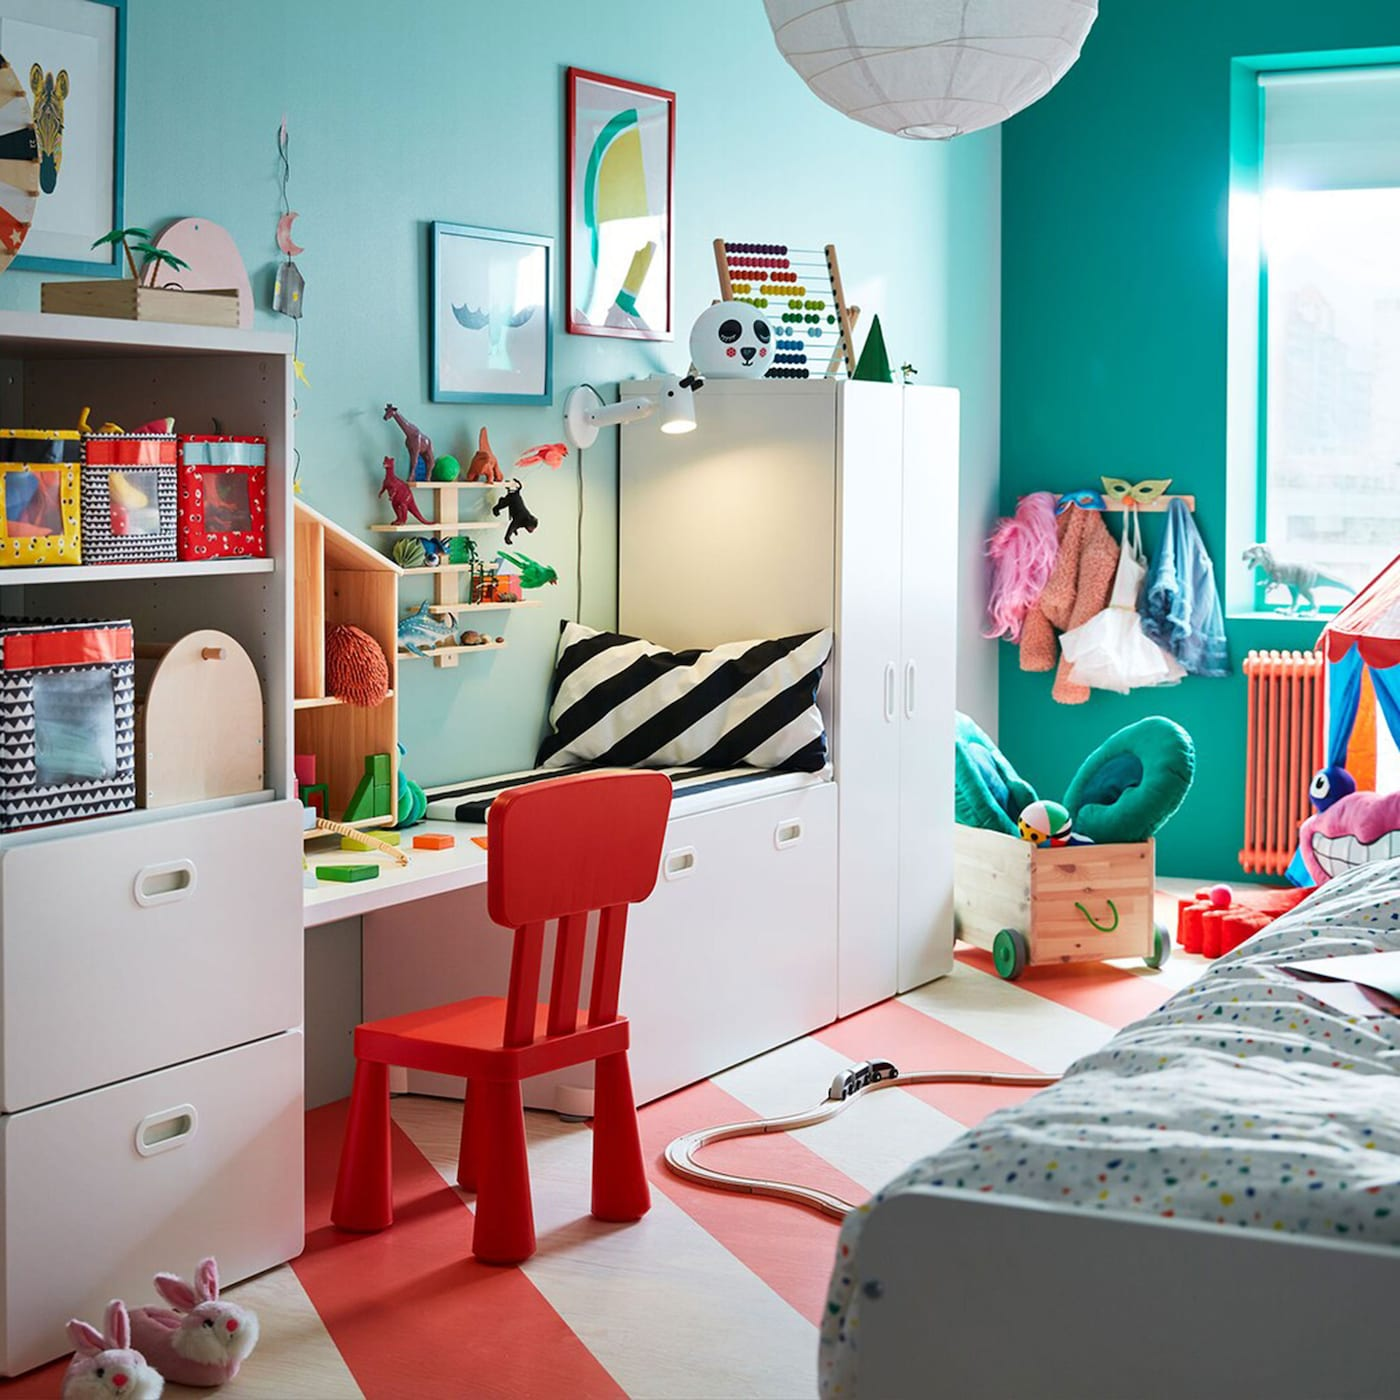 Ikea Kids Study Room: IKEA Children's Room